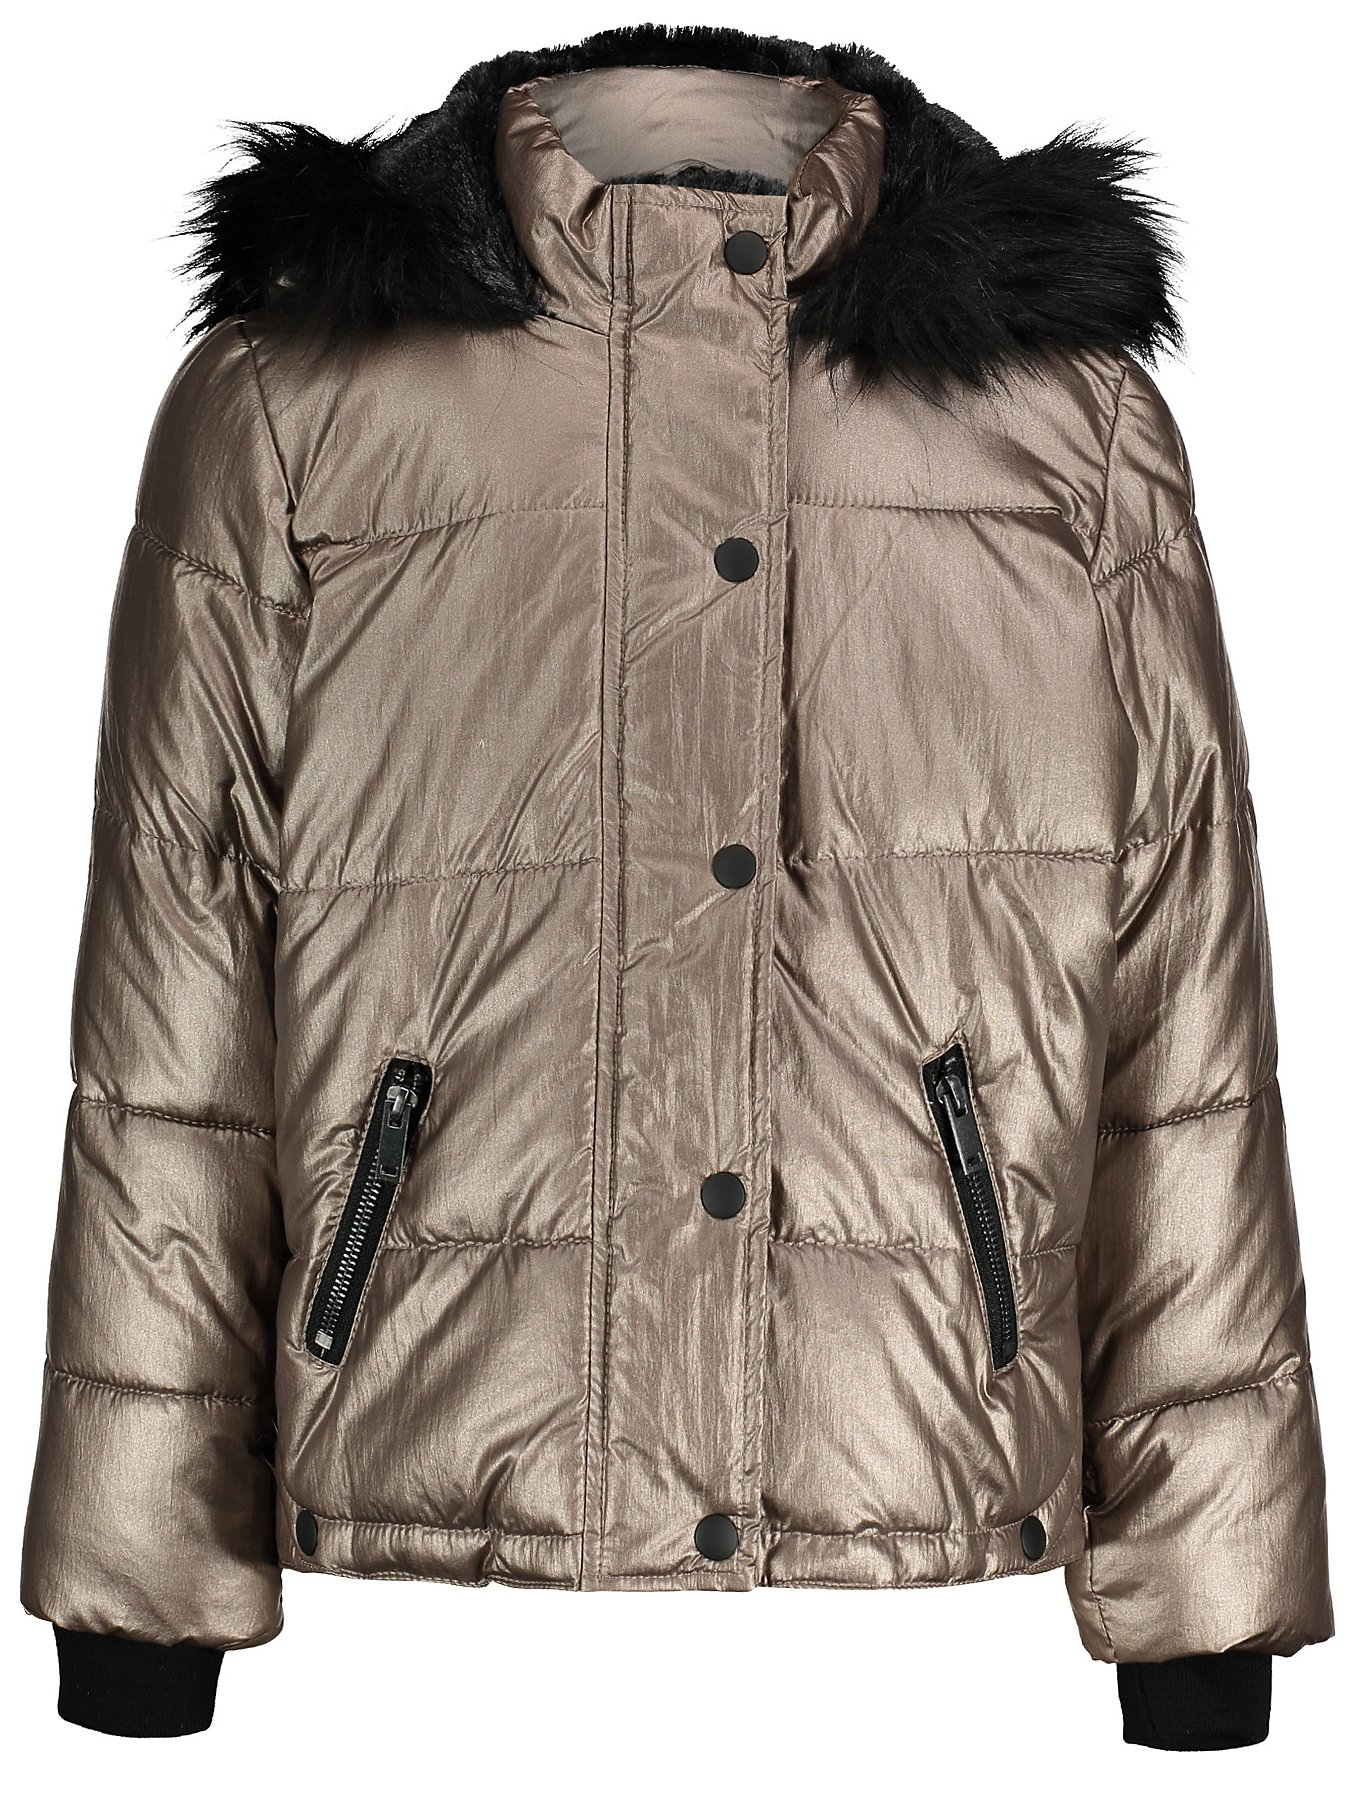 Coats & Jackets | Girls 4-14 Years | Kids | George at ASDA